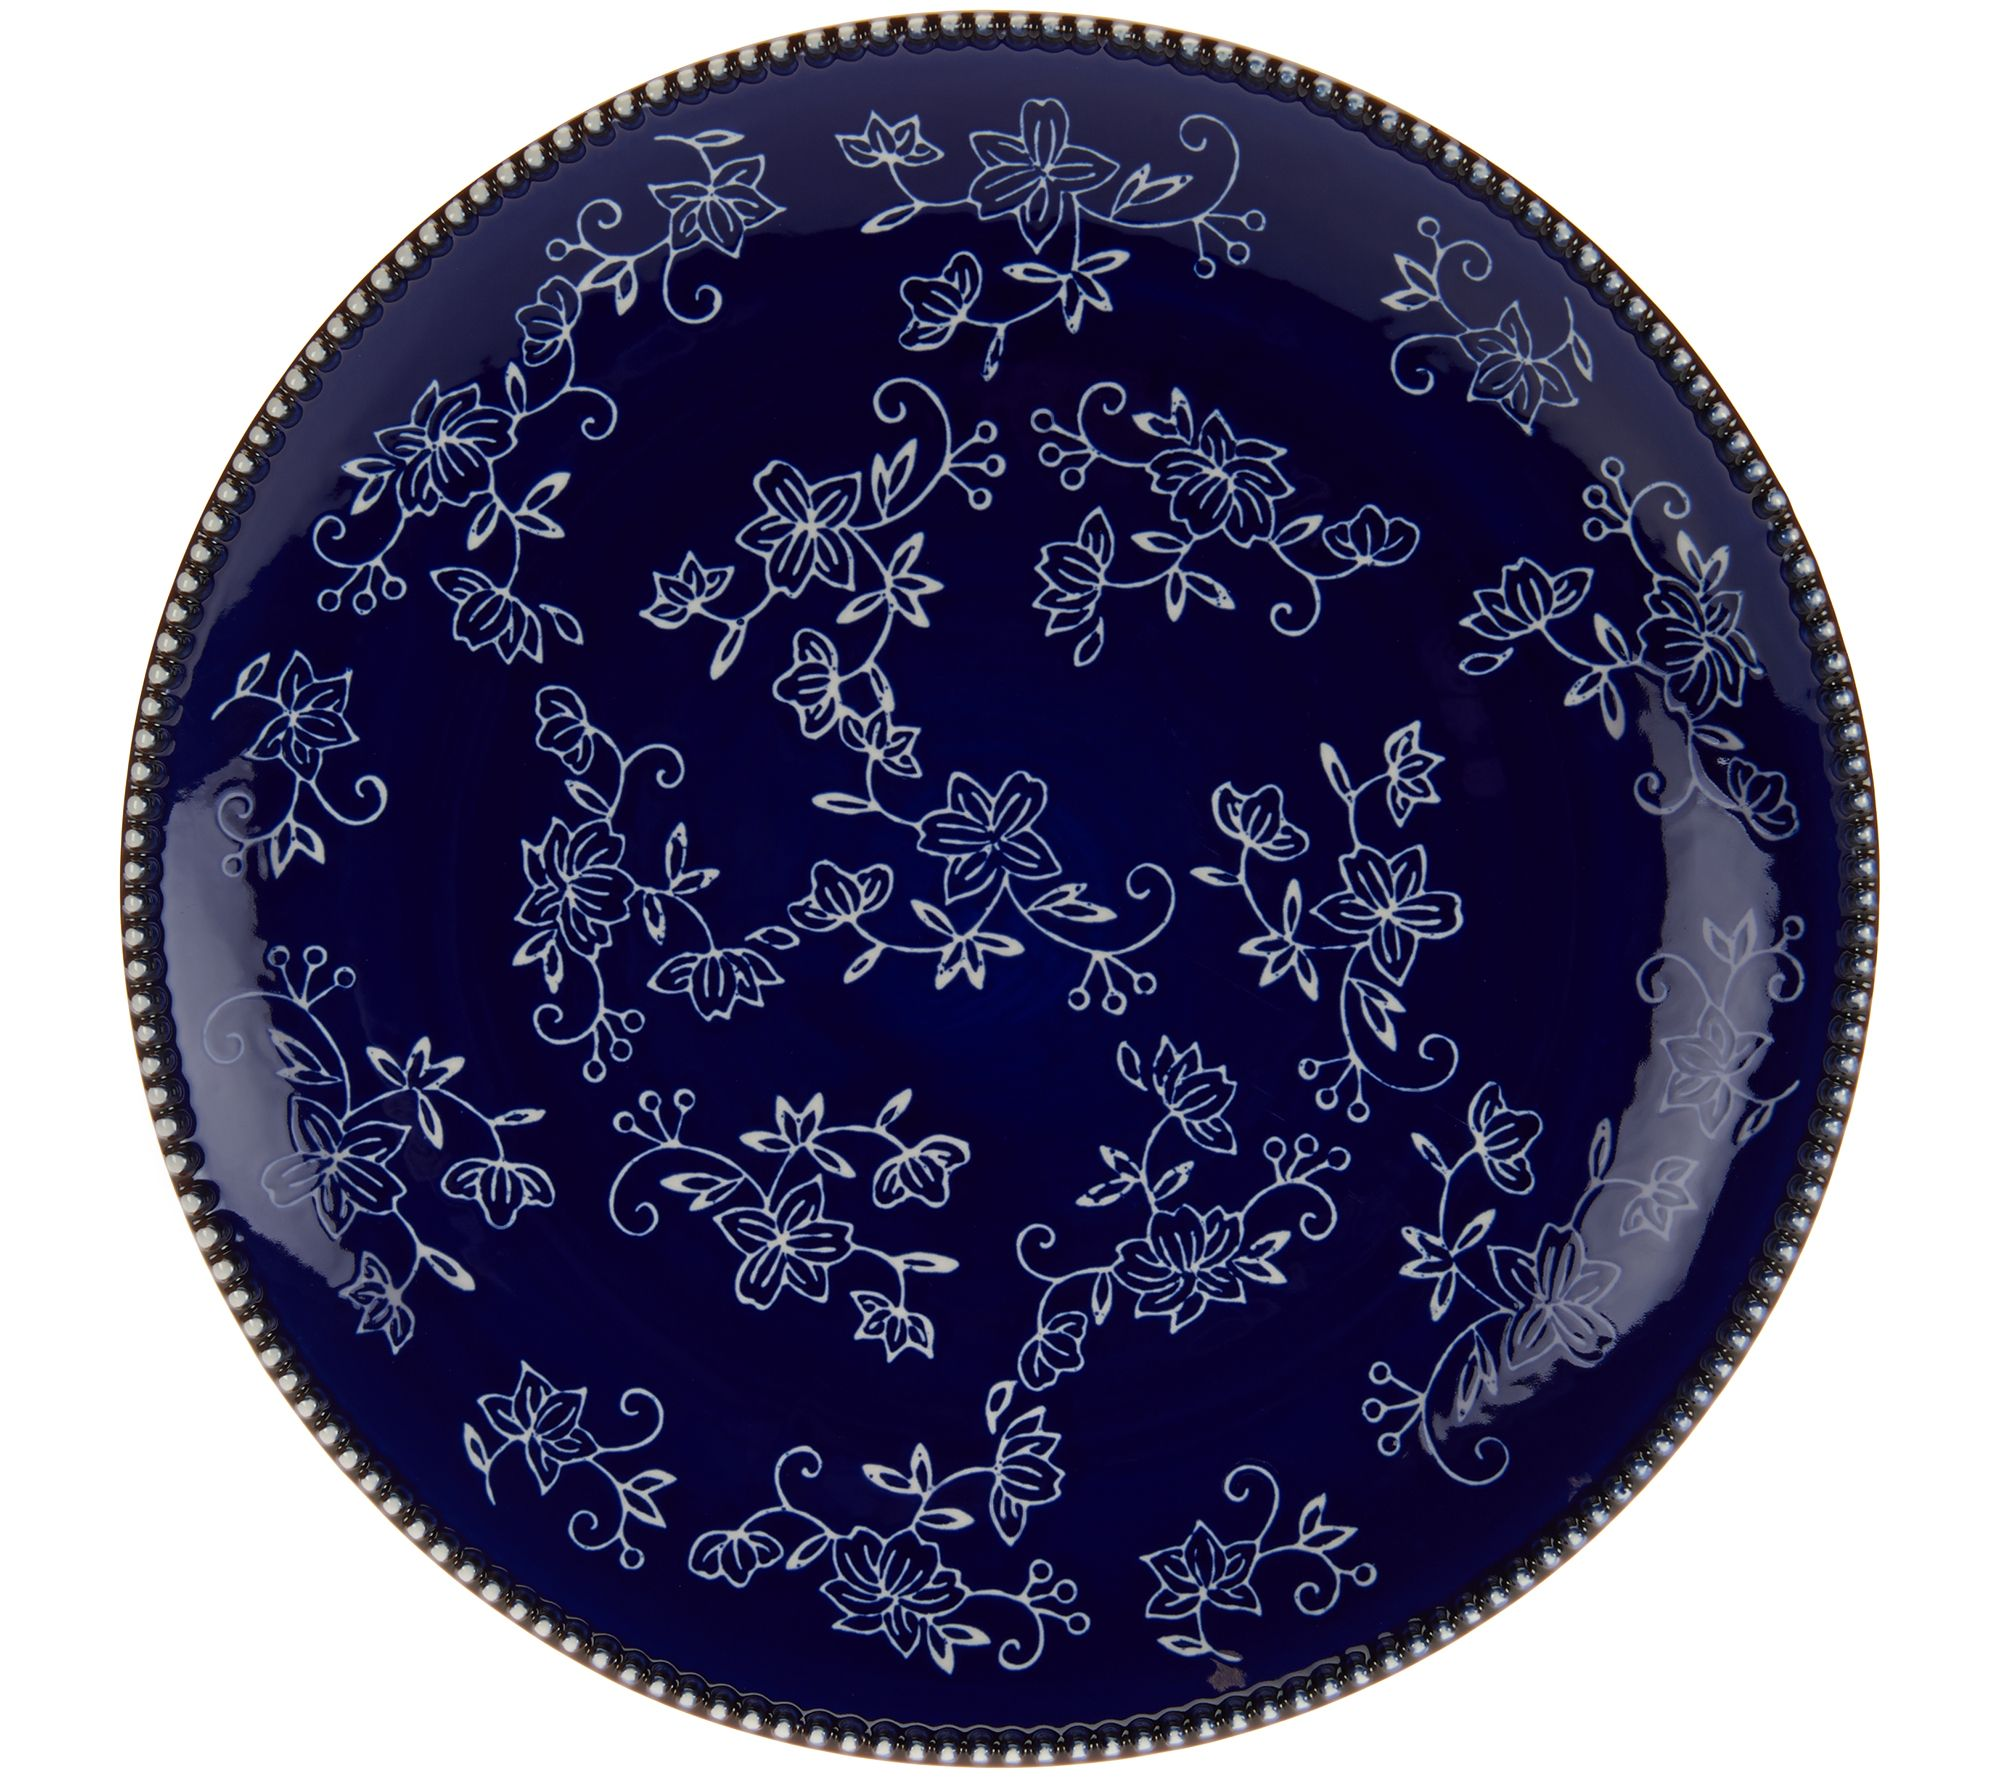 Temptations 24-piece Floral Lace Service for 4 Dinnerware Set - Page ...